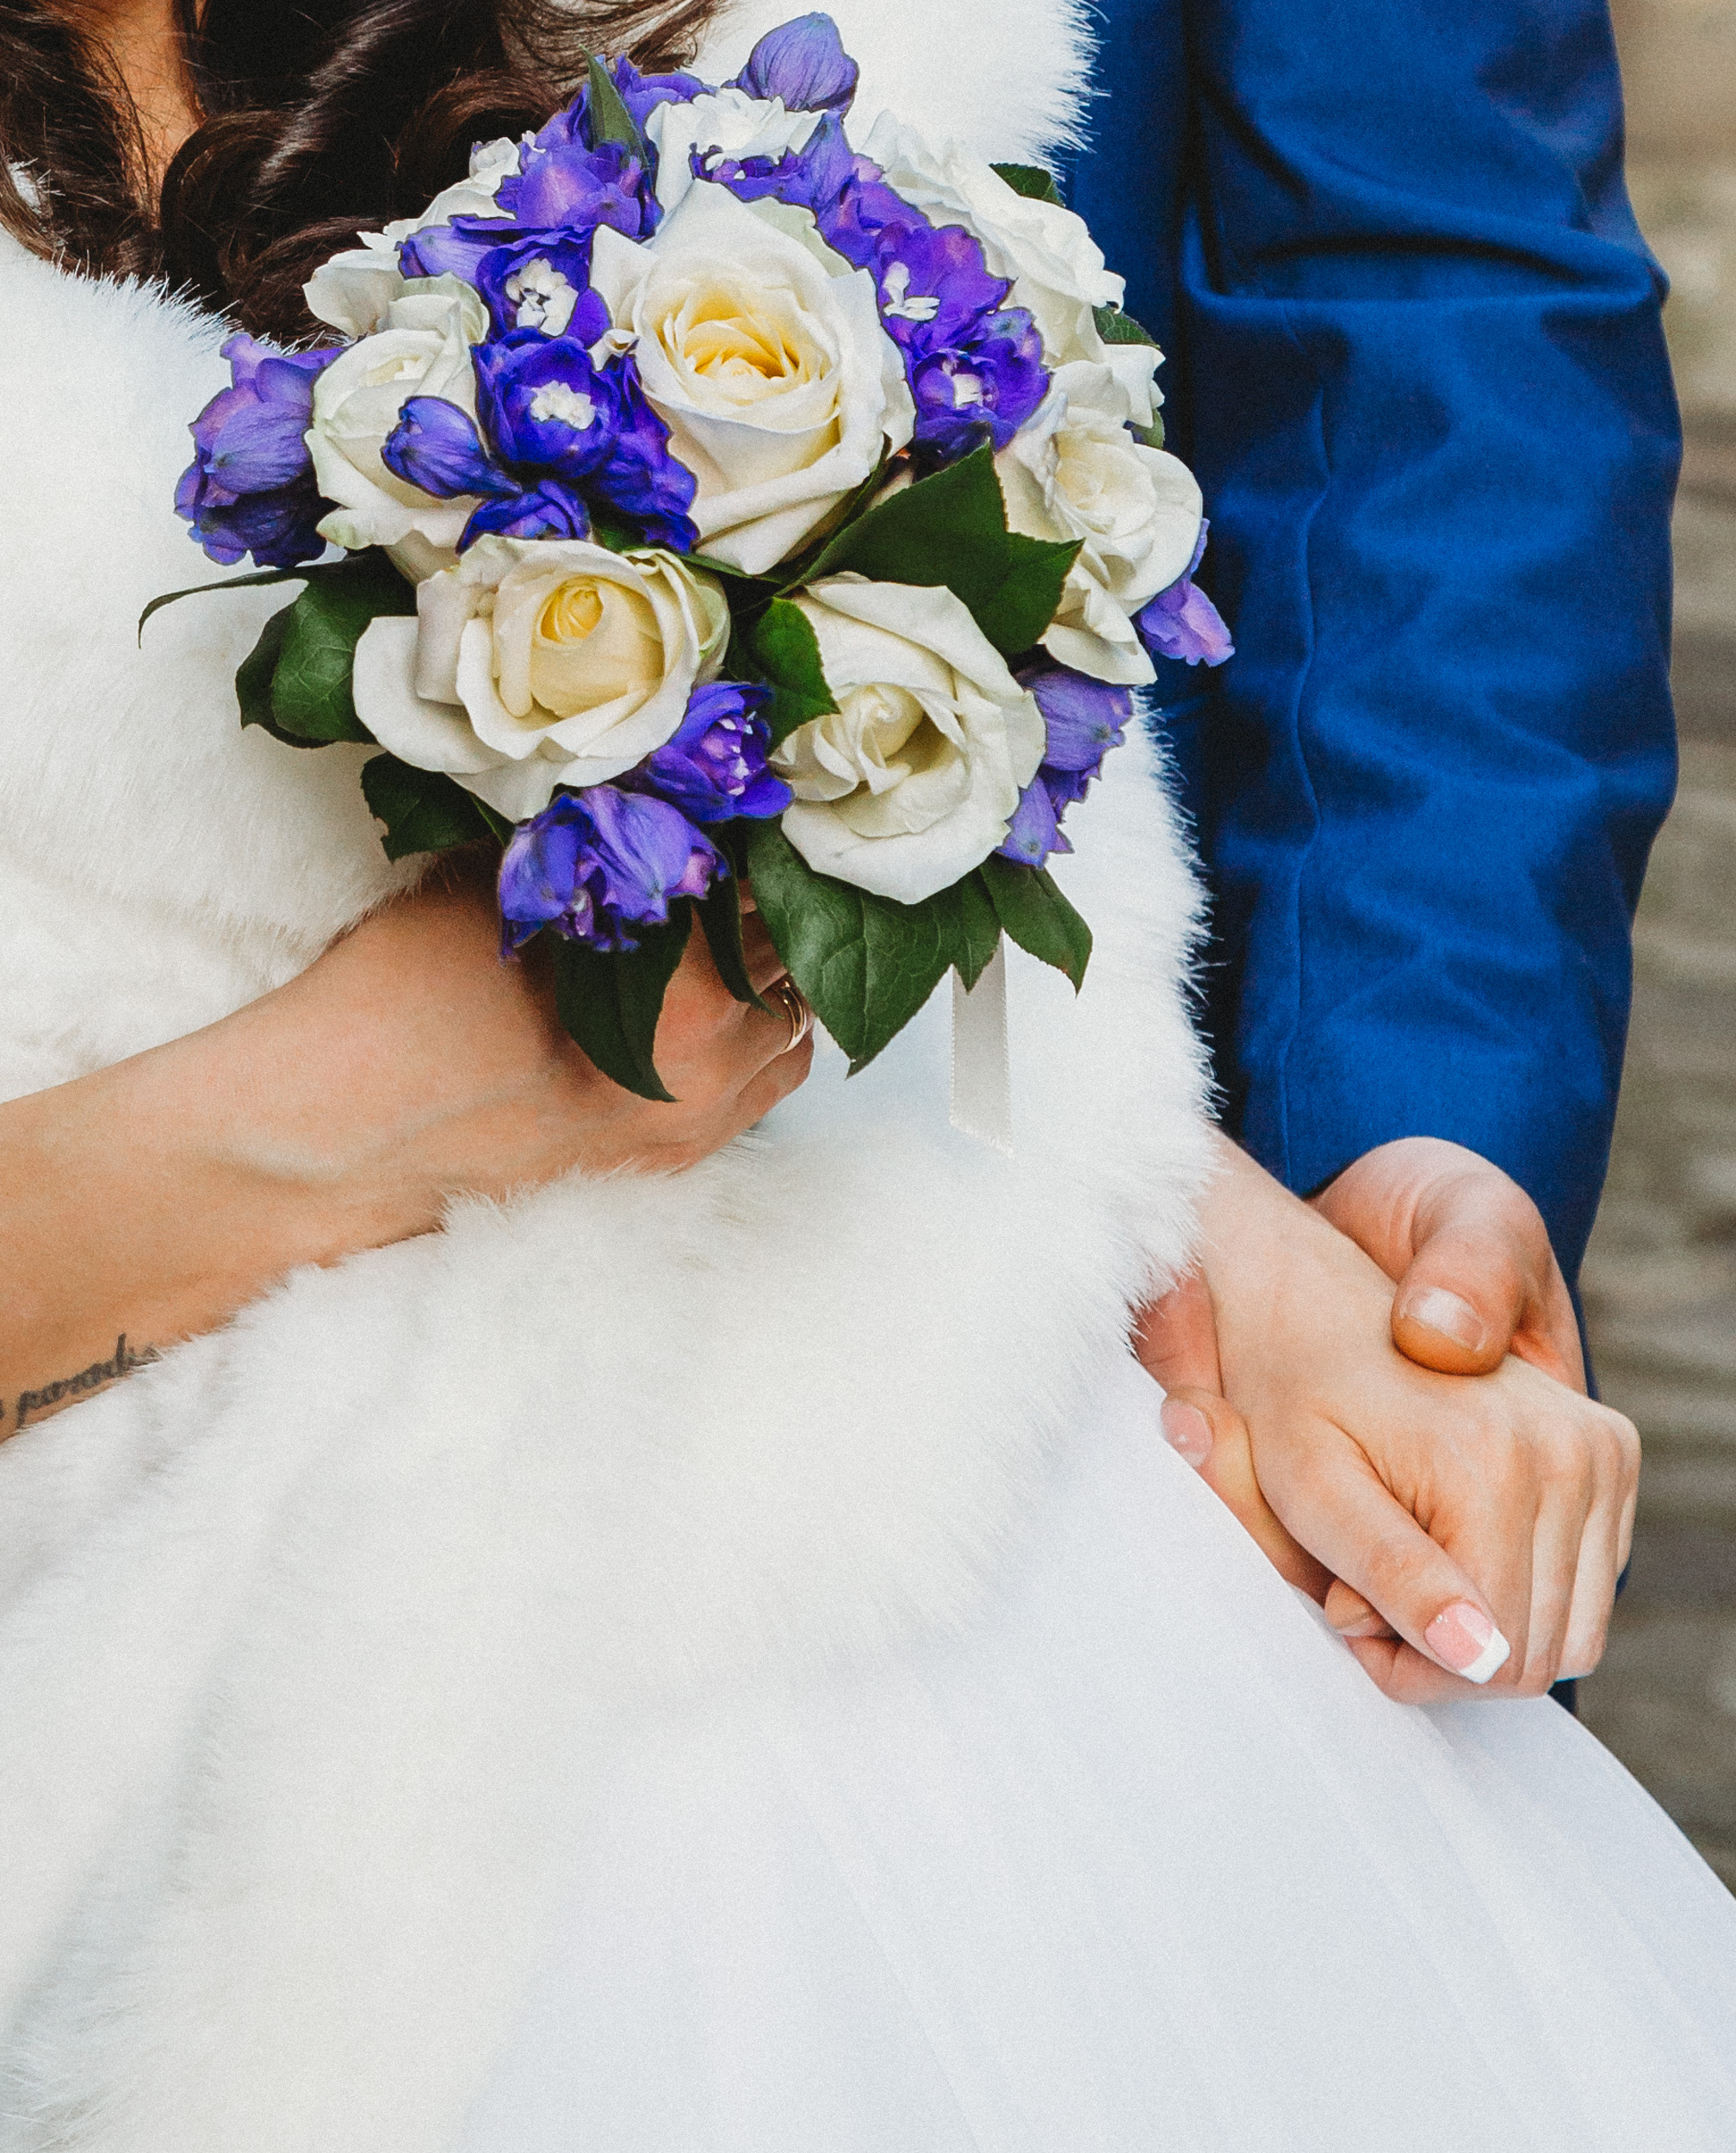 Premium - £1250● Pre-wedding consultation● Engagement photo shoot*● 2 photographers● Full day coverage from bride/groom getting ready to the very end of the party (aprox. 11- 14 h coverage).● Proof and photo selection by customer before start editing.● 400+ edited digital high resolution images on personalised USB stick in a keepsake box. Online gallery for 12 months.● Wedding photo book.